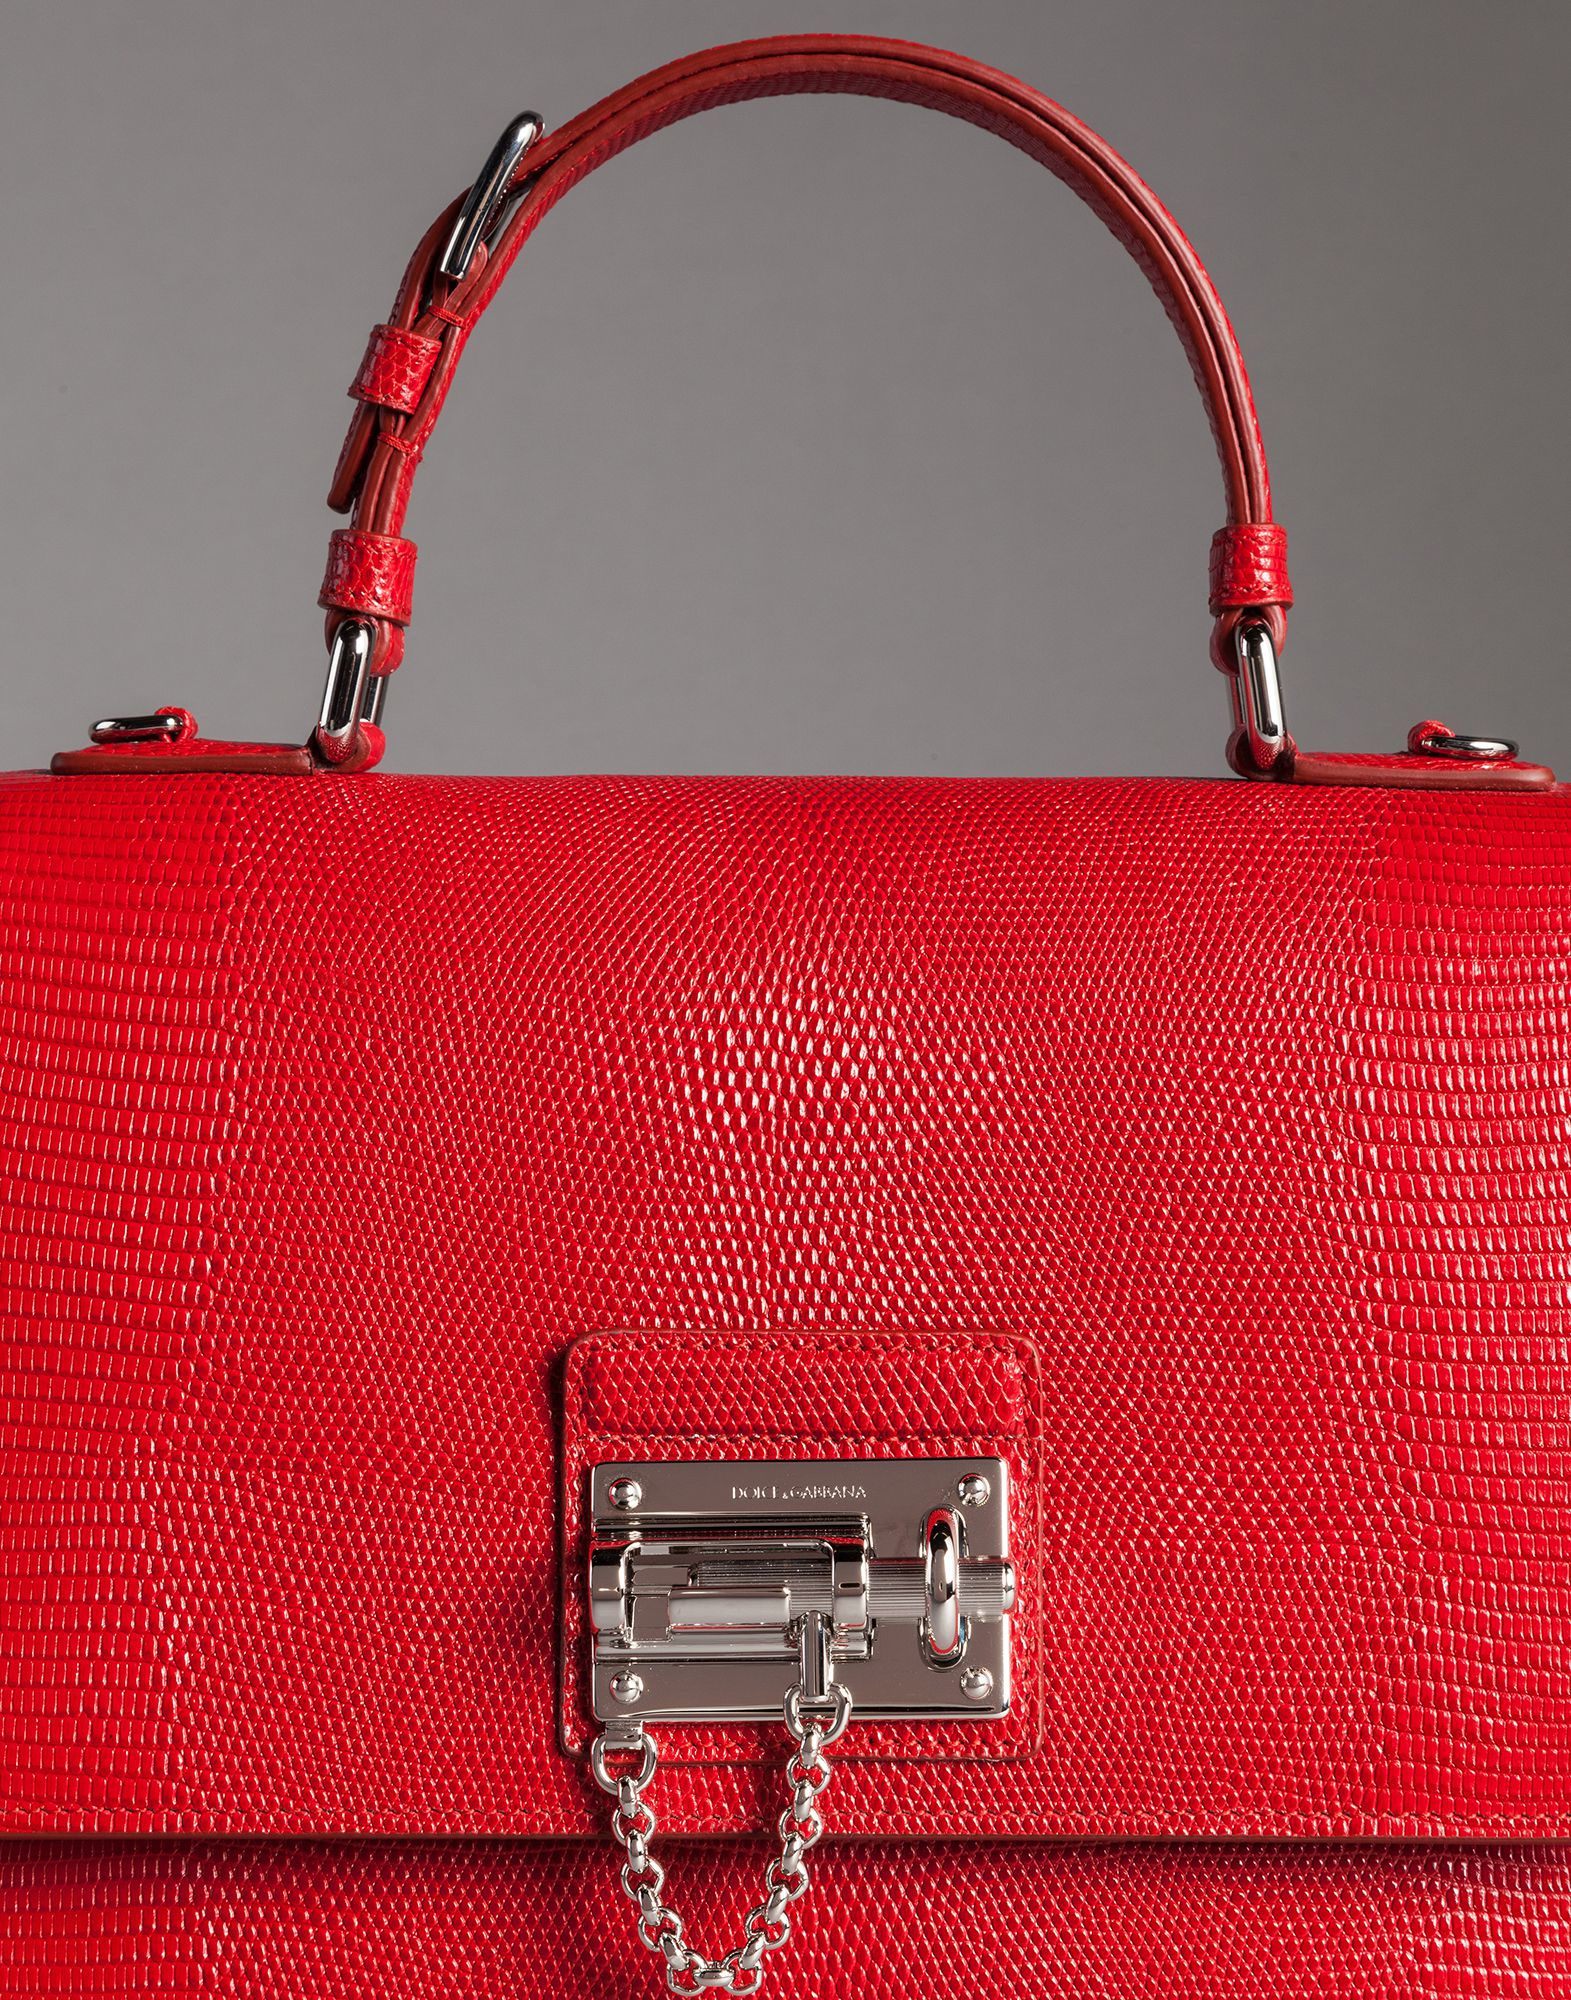 Dolce   Gabbana Iguana Print Leather Monica Bag in Red - Lyst 86af3ba821cfb